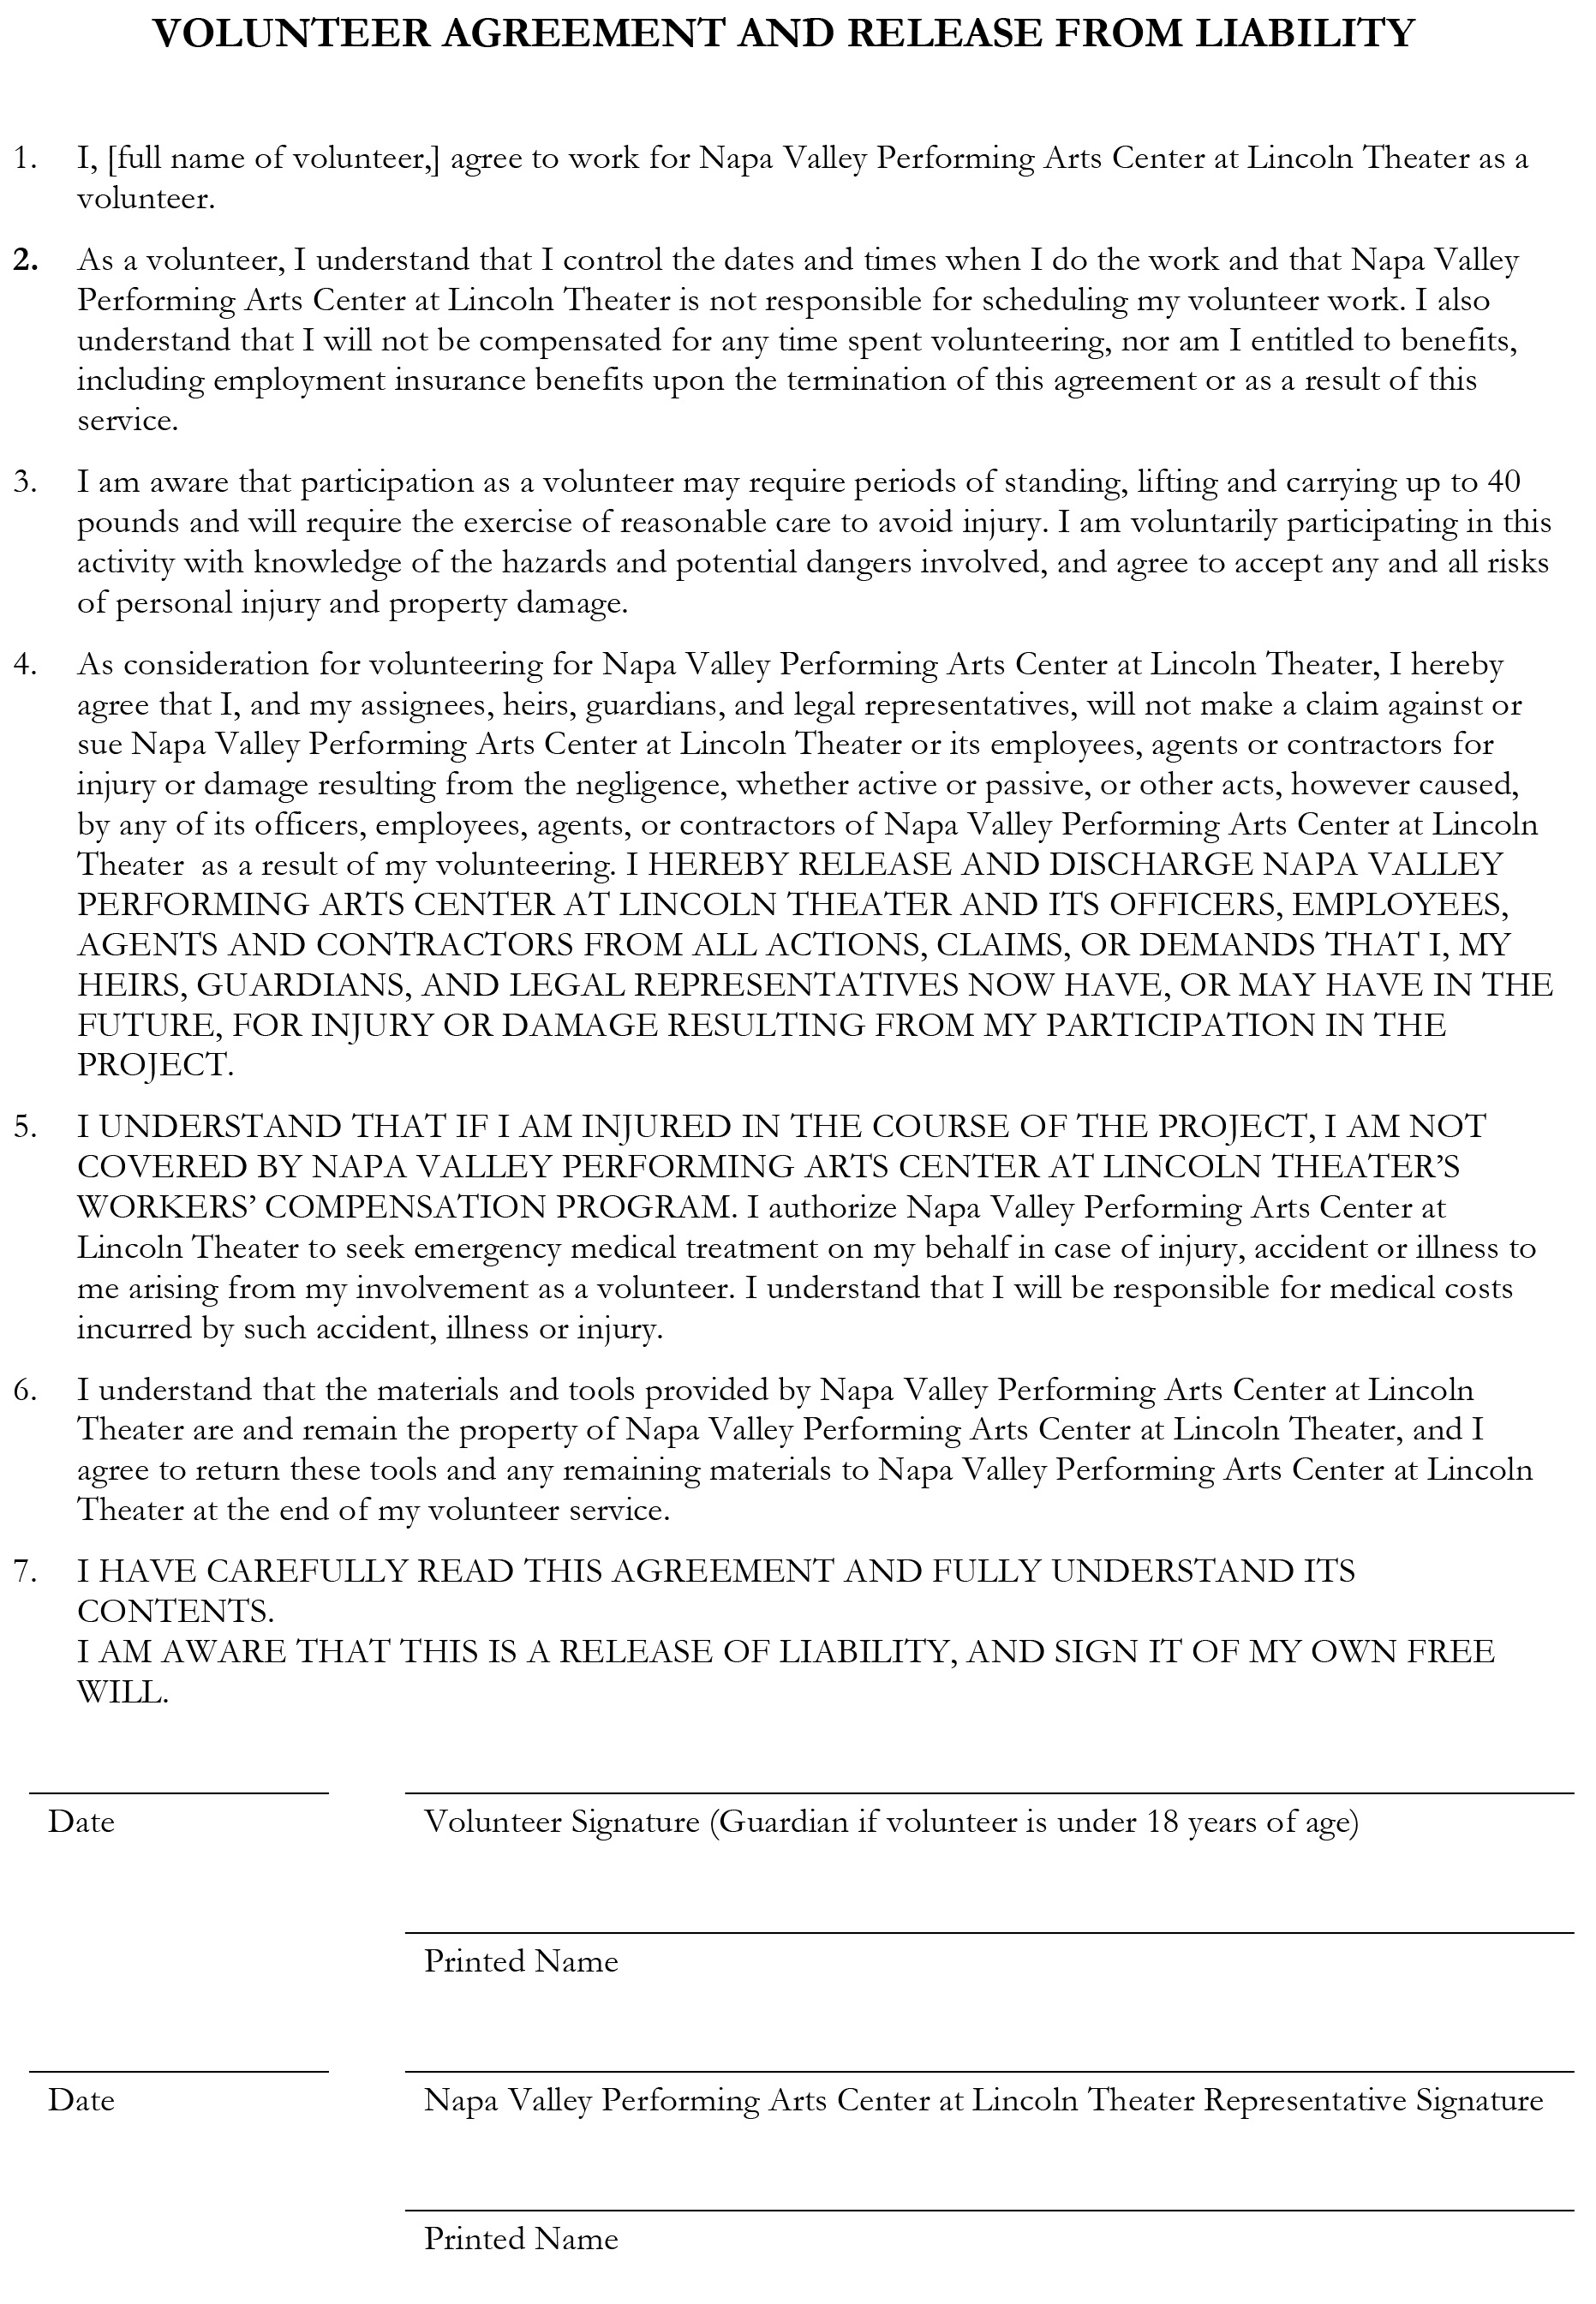 Microsoft Word - Volunteer form and waiver.docx